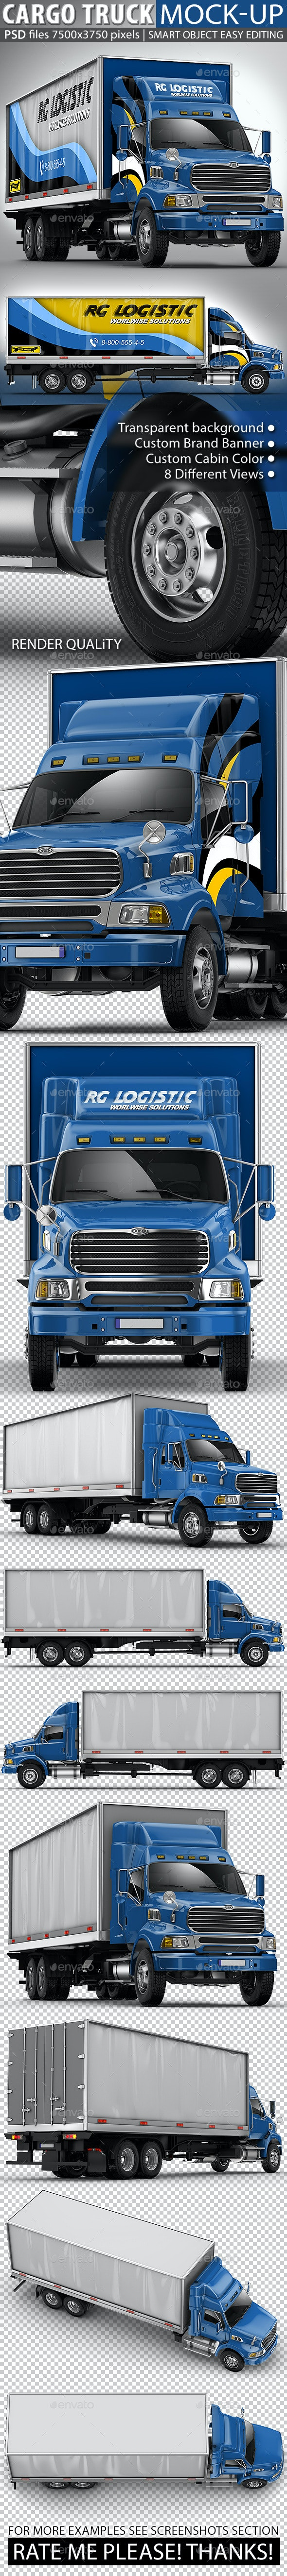 Cargo Truck Mock-Up based Ford Sterling - Vehicle Wraps Print